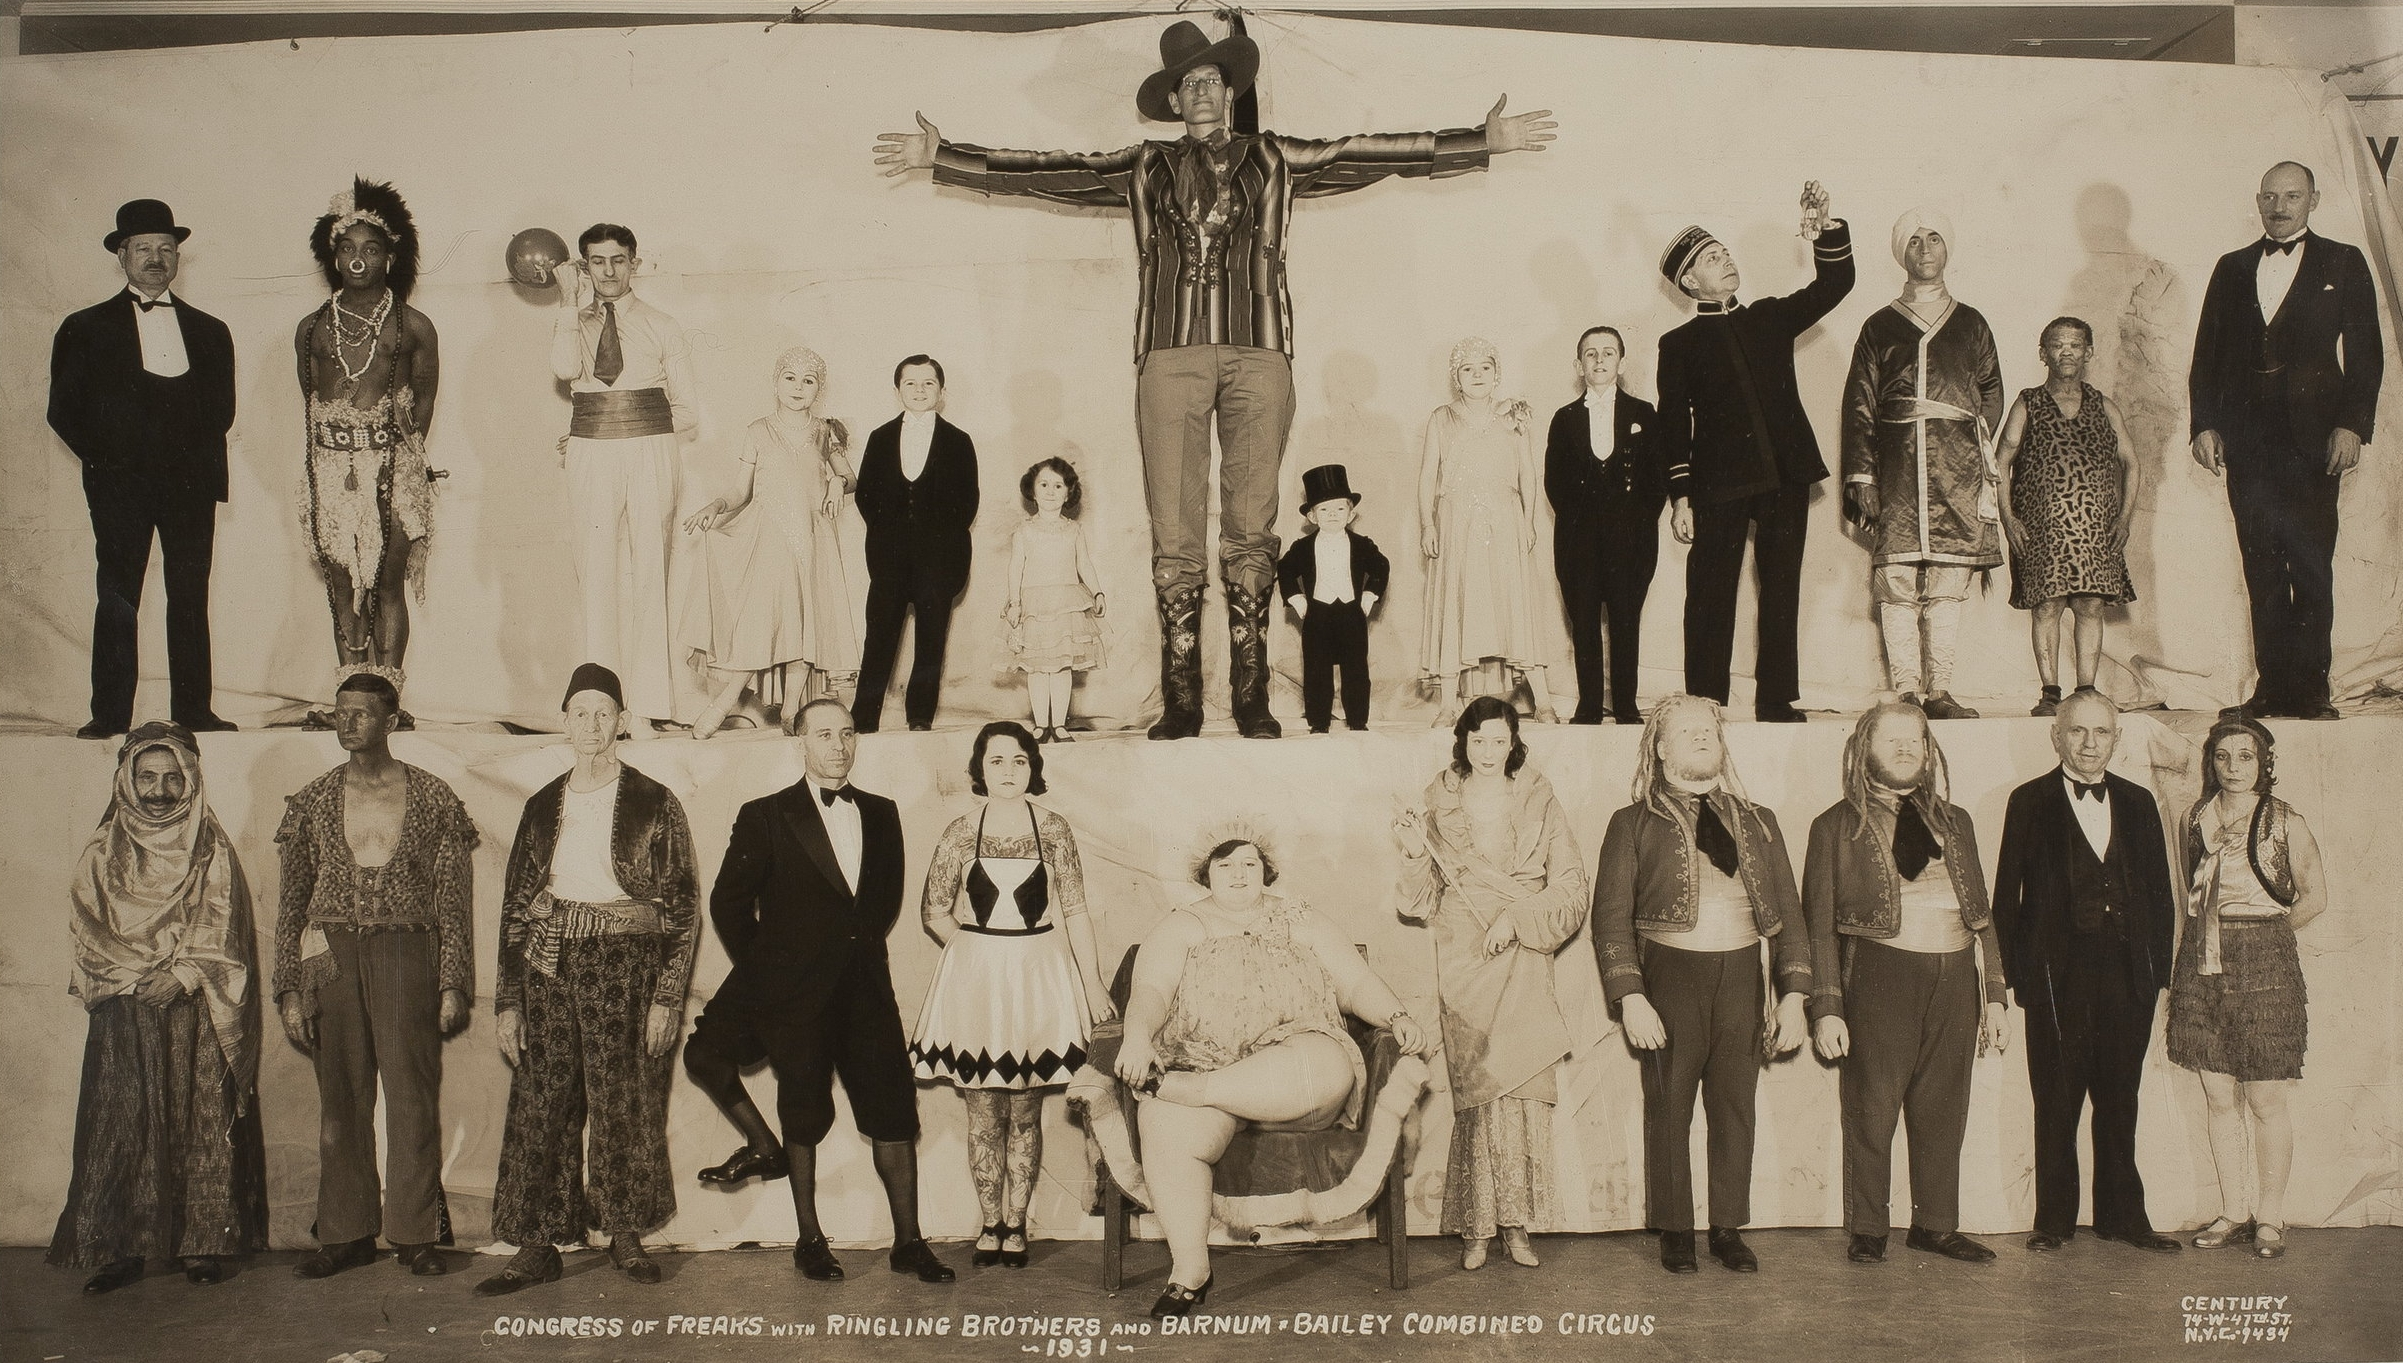 Congress of Freaks, Large Format Photograph, by E. J. Kelty, 1931